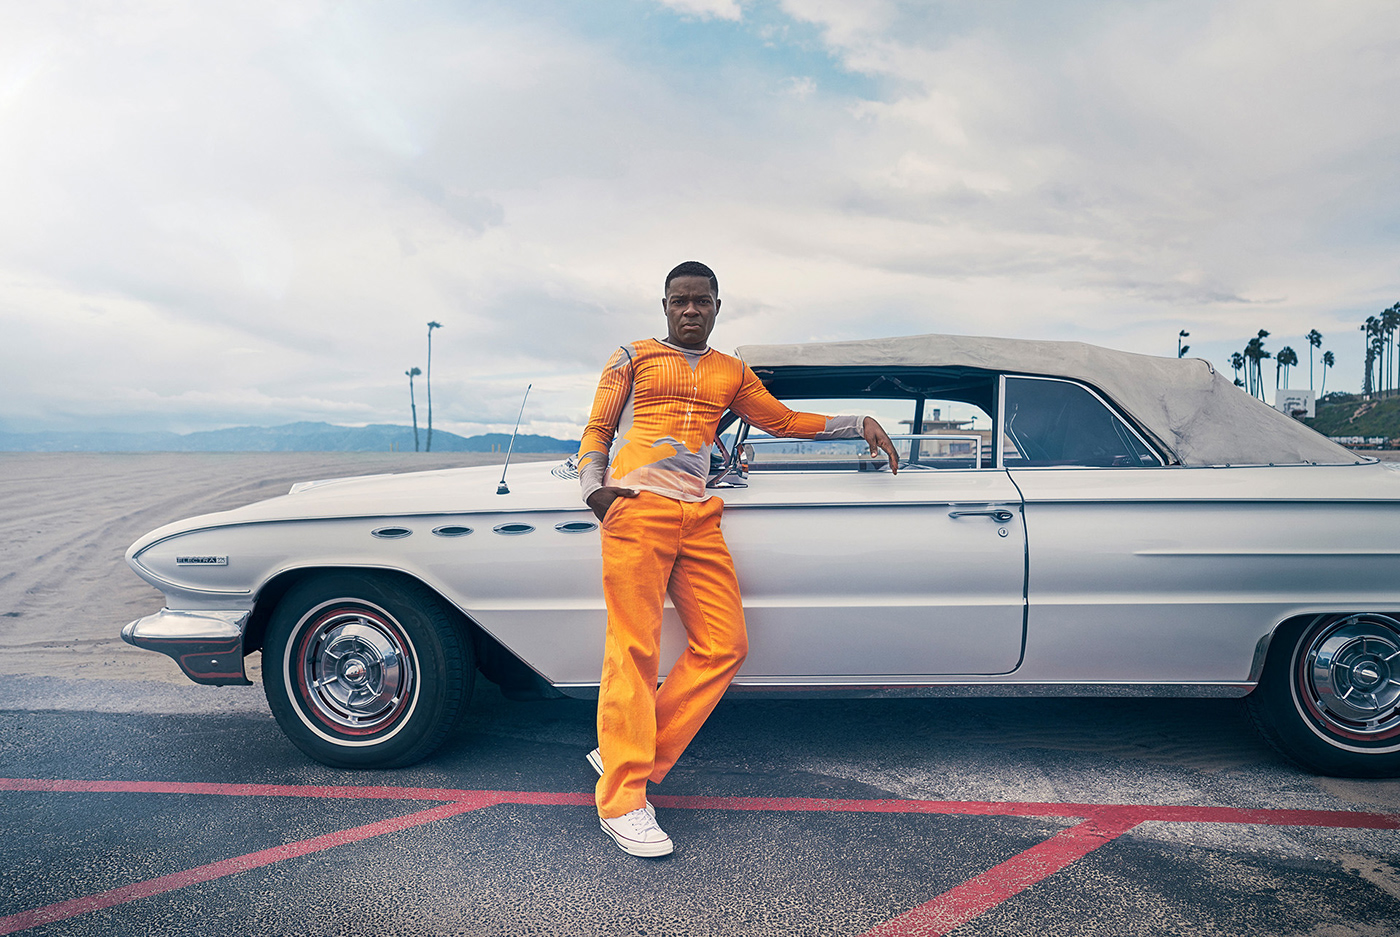 Hollywood actor David Oyelowo in front of a vintage car photographed for Alexa Magazine.